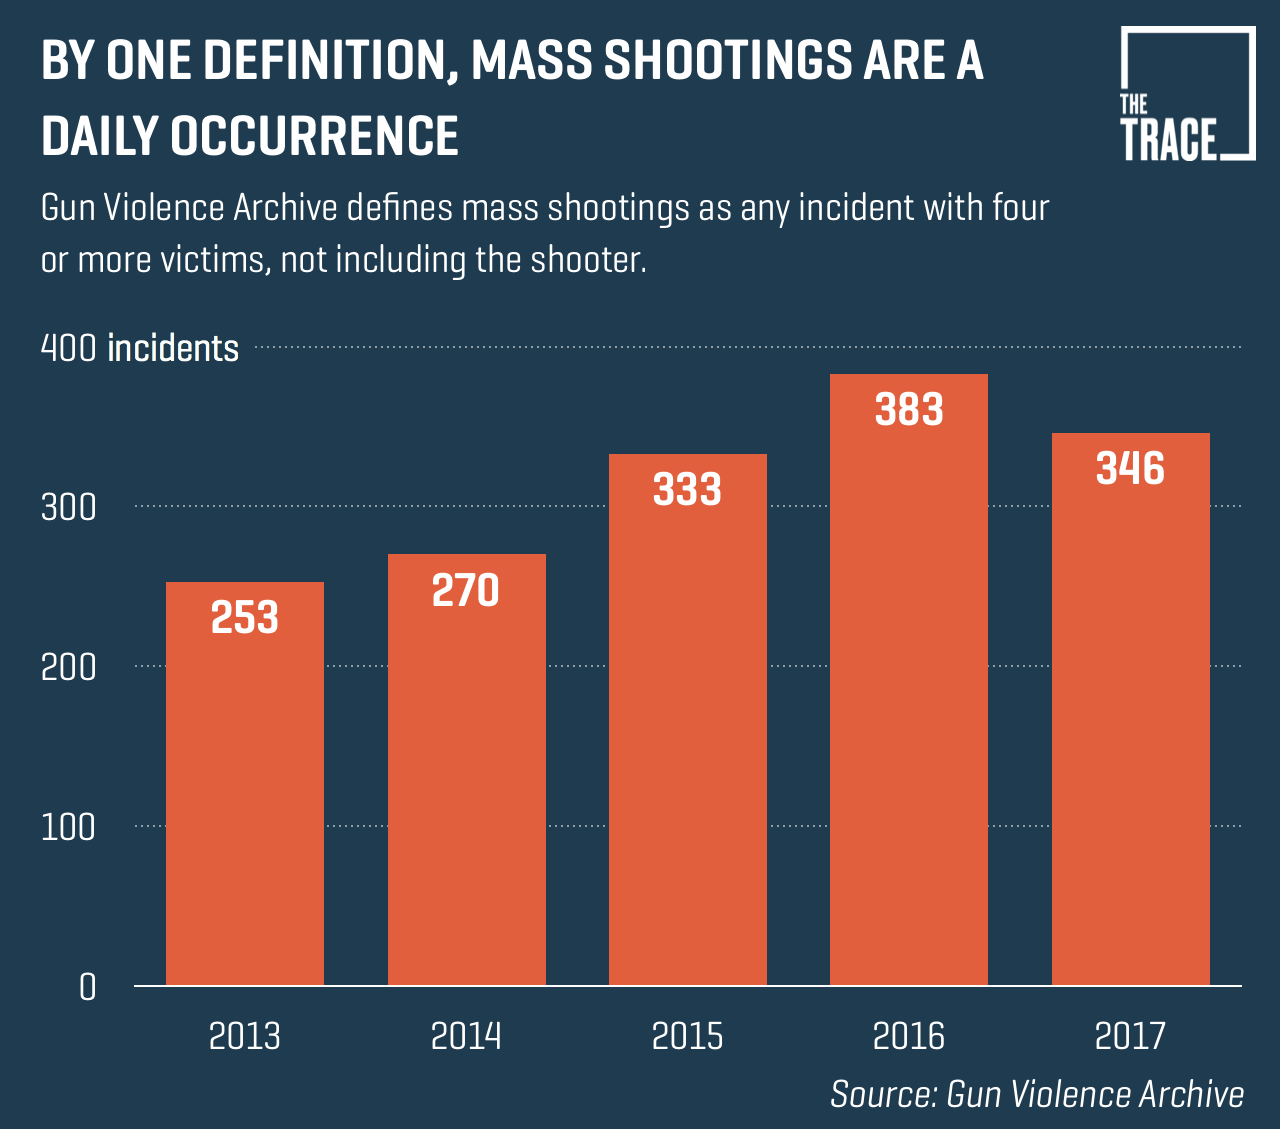 18 Facts About Gun Violence and 6 Promising Ways to Reduce